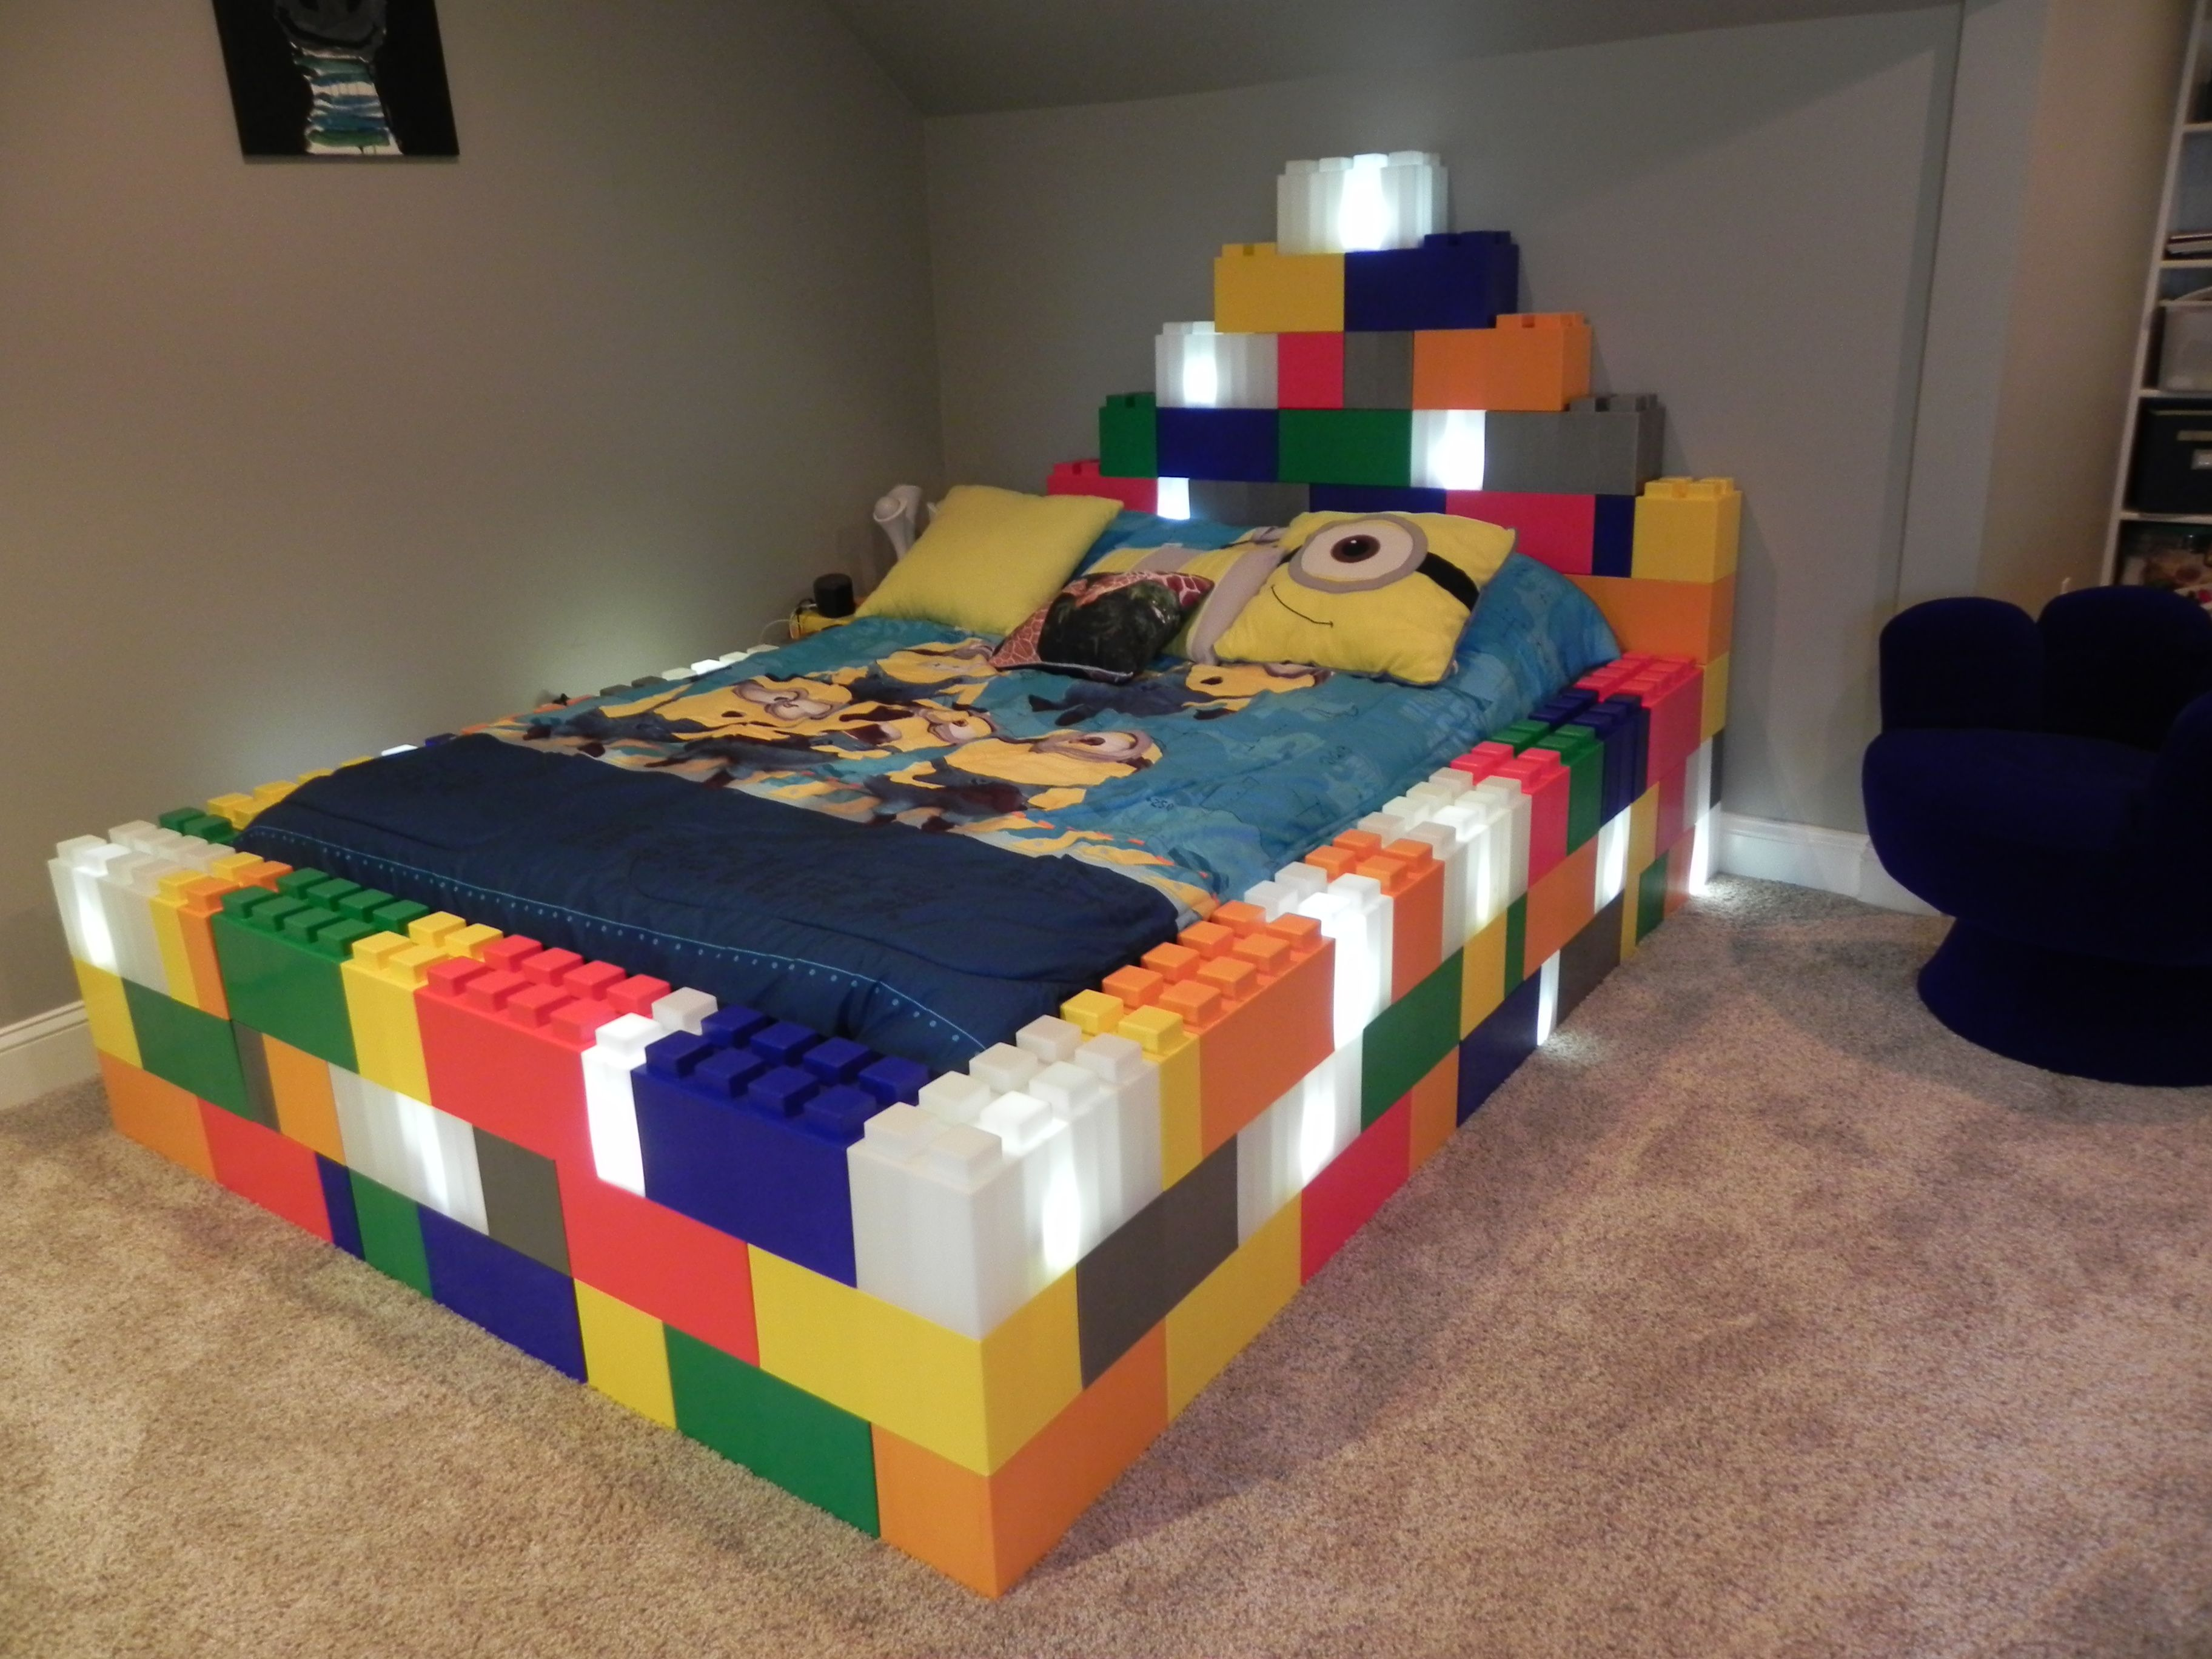 Everblock Bed Blocks Everblock Bed Made From A Series Of Colorful